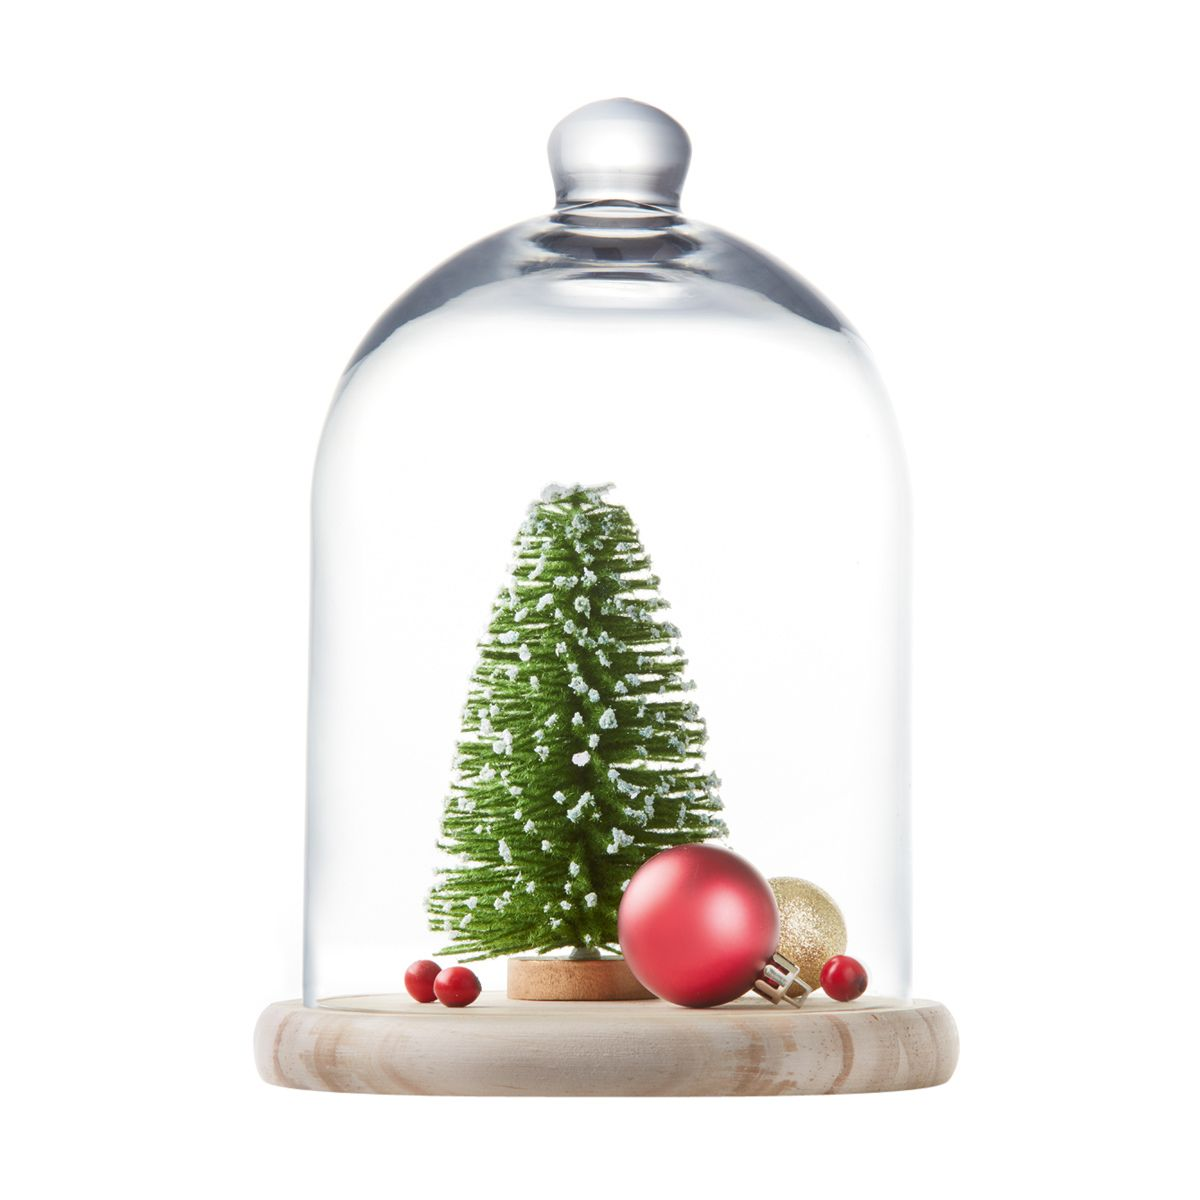 Bell Jar Kmart The Bell Jar Christmas Inspo Jar